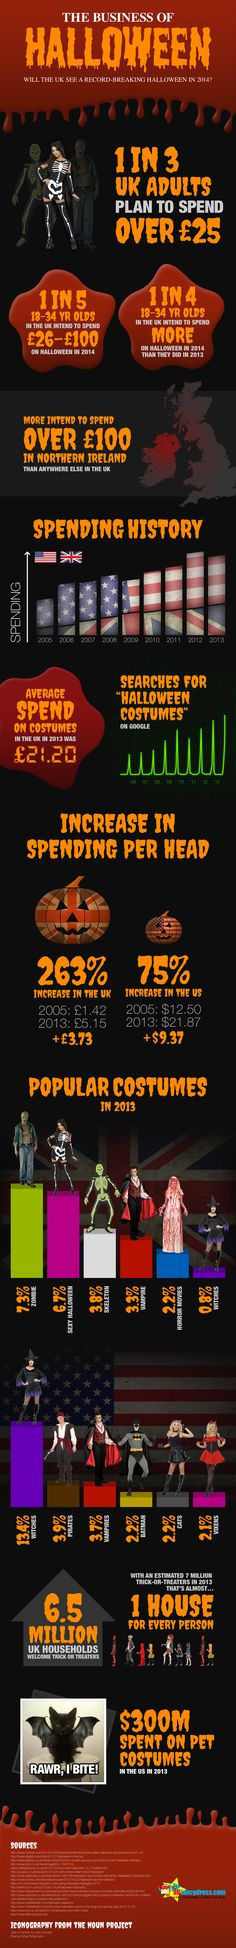 """The Business of Halloween"" infographic for allfancydress.com #allfancydress #fancy #dress #halloween #spending #survey #infographic"